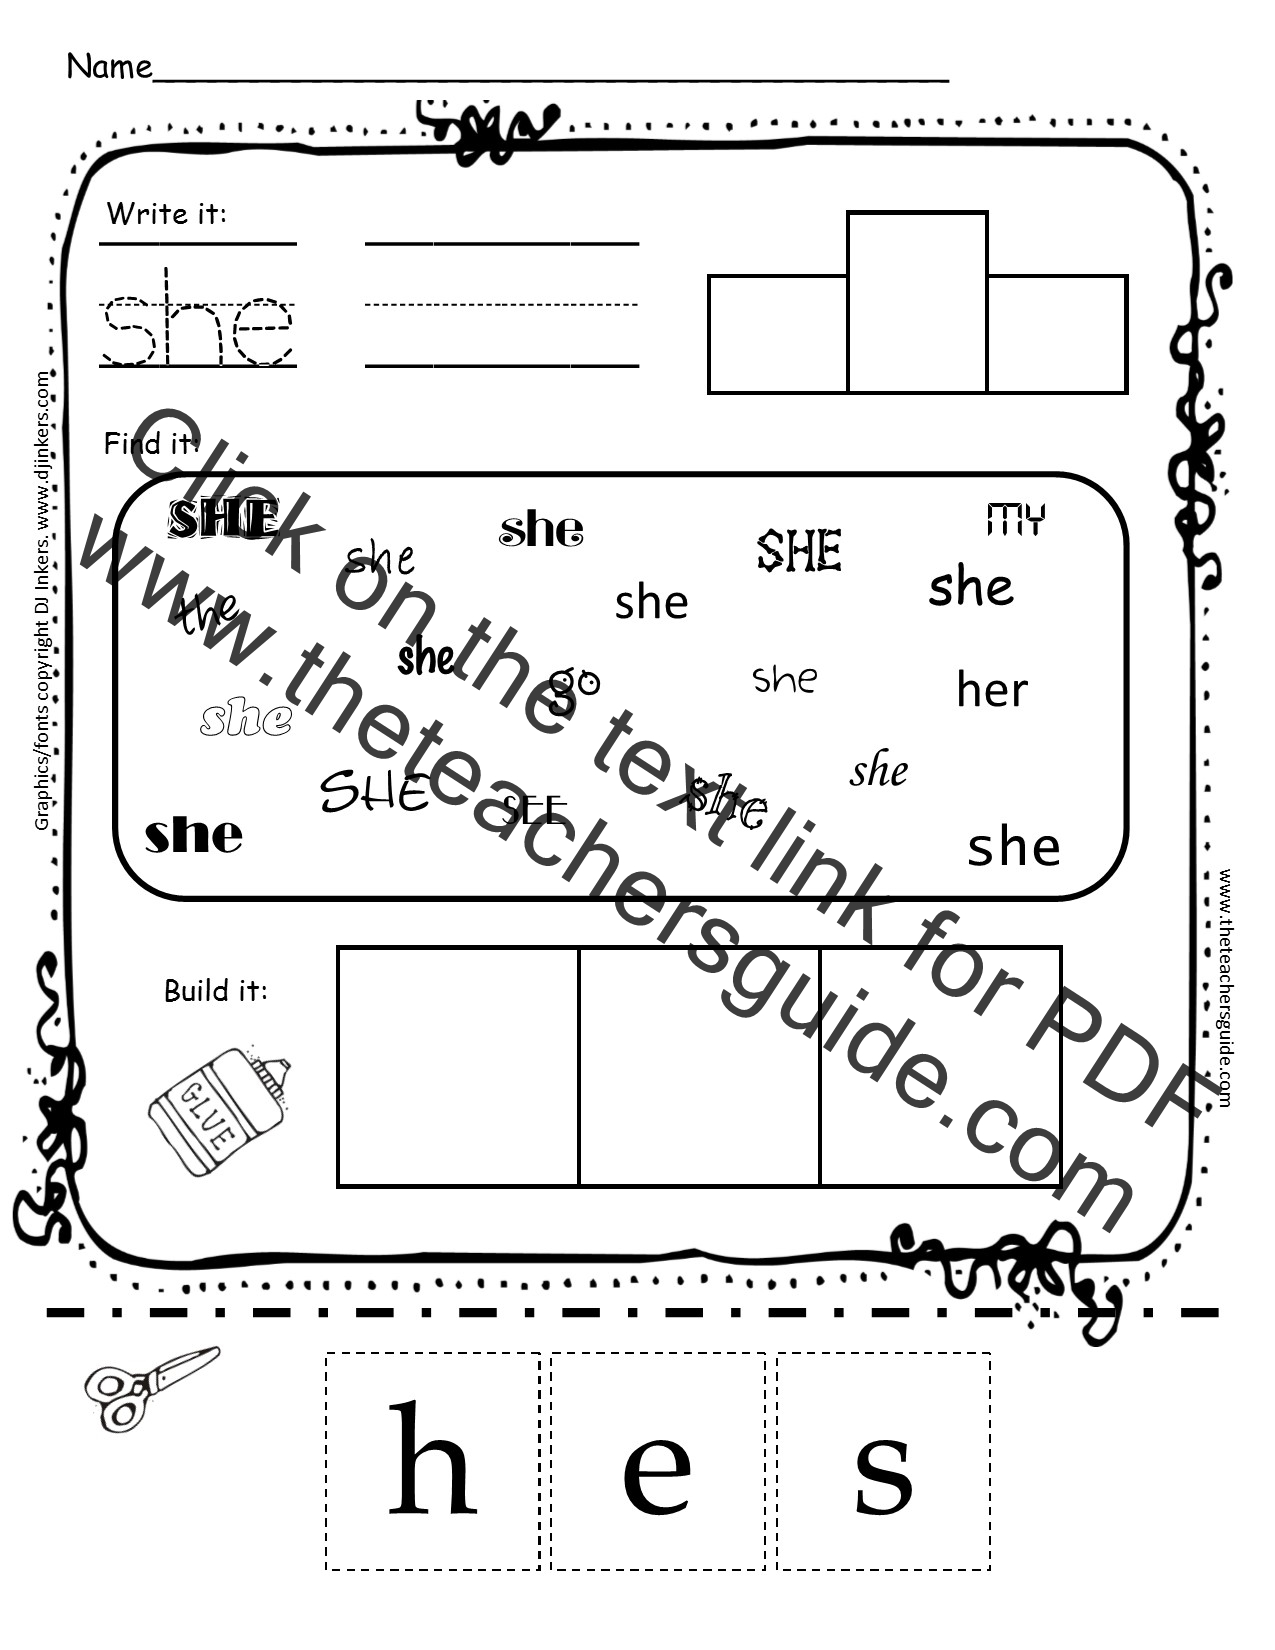 Kindergarten Sight Word Printouts From The Teacher 39 S Guide